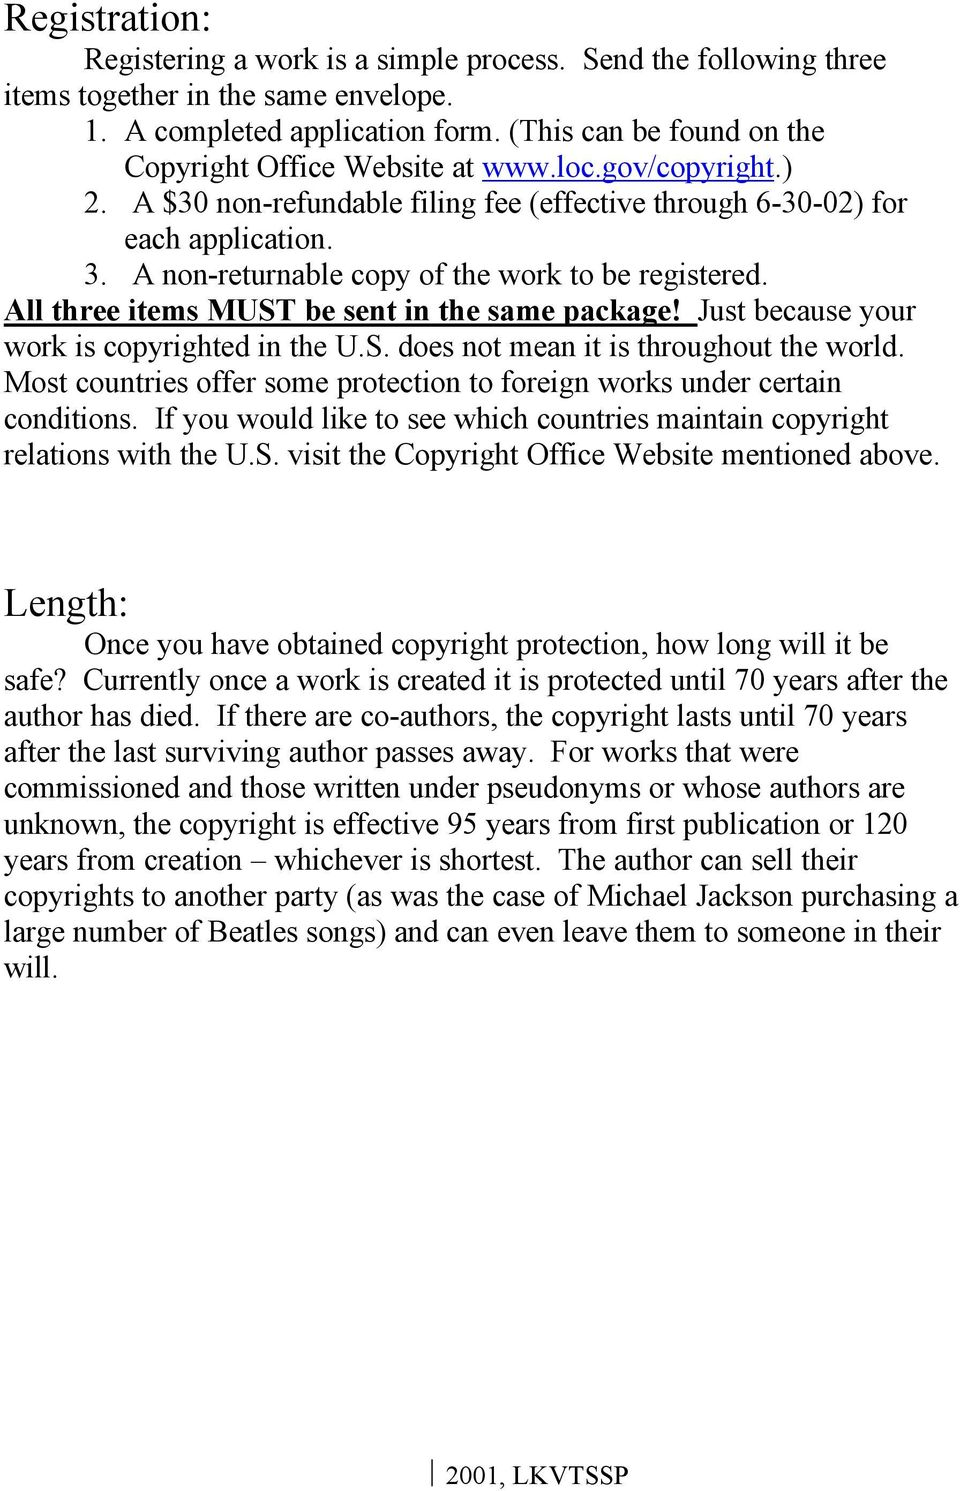 A non-returnable copy of the work to be registered. All three items MUST be sent in the same package! Just because your work is copyrighted in the U.S. does not mean it is throughout the world.